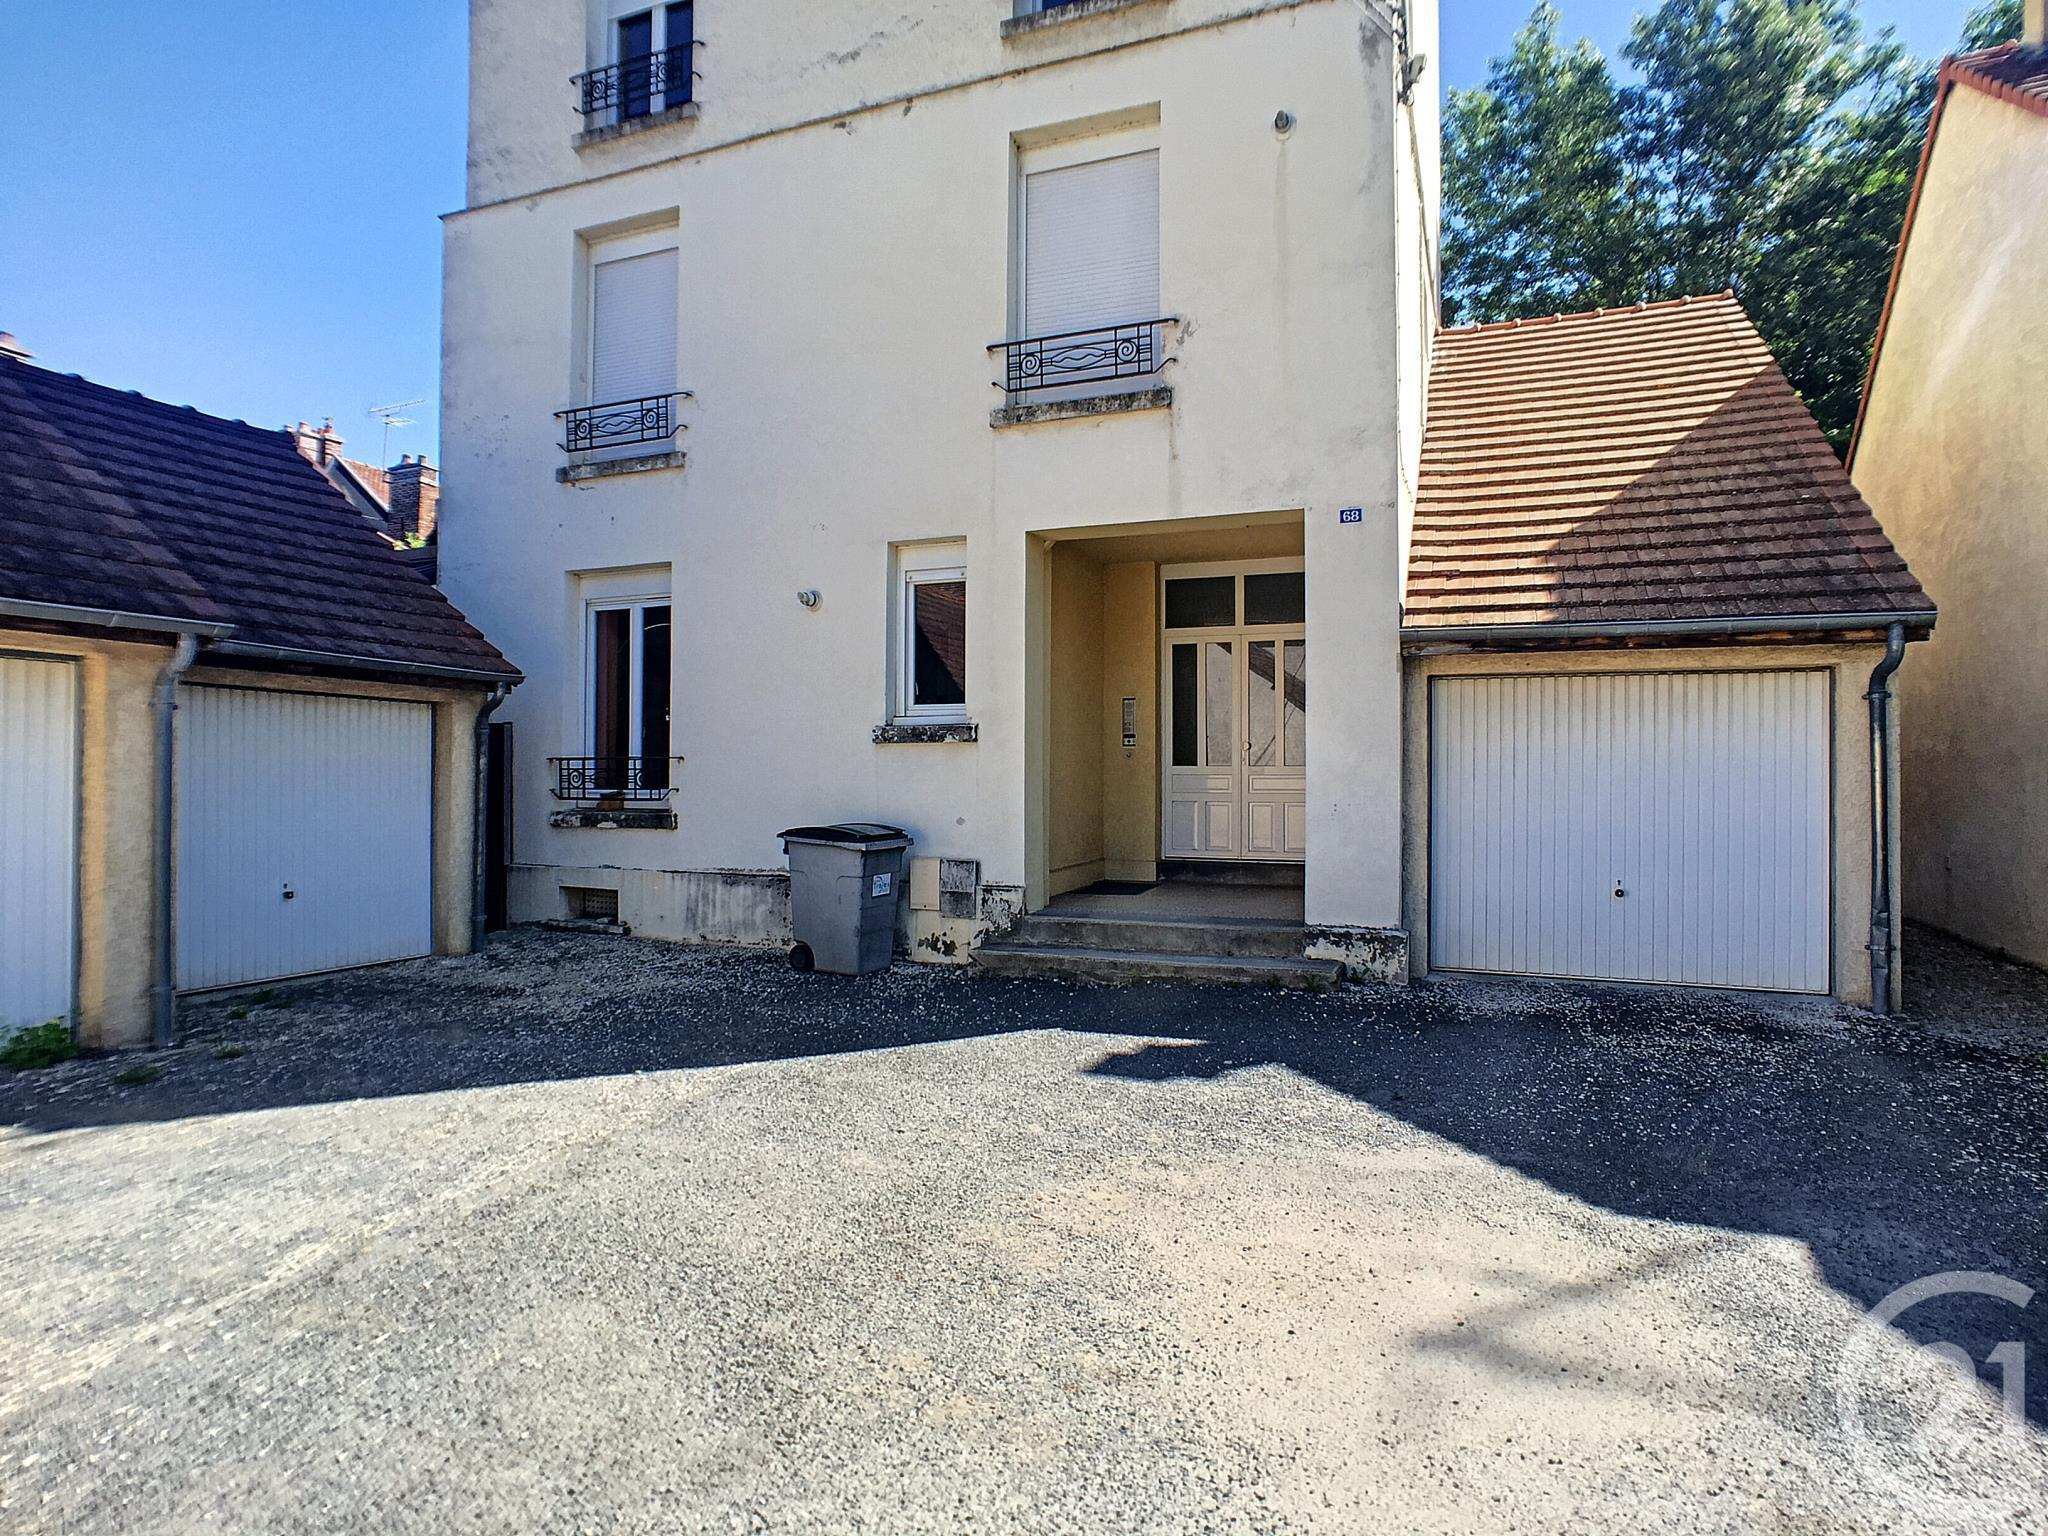 Appartement f3 à vendre - 3 pièces - 68 m2 - TROYES - 10 - CHAMPAGNE-ARDENNE